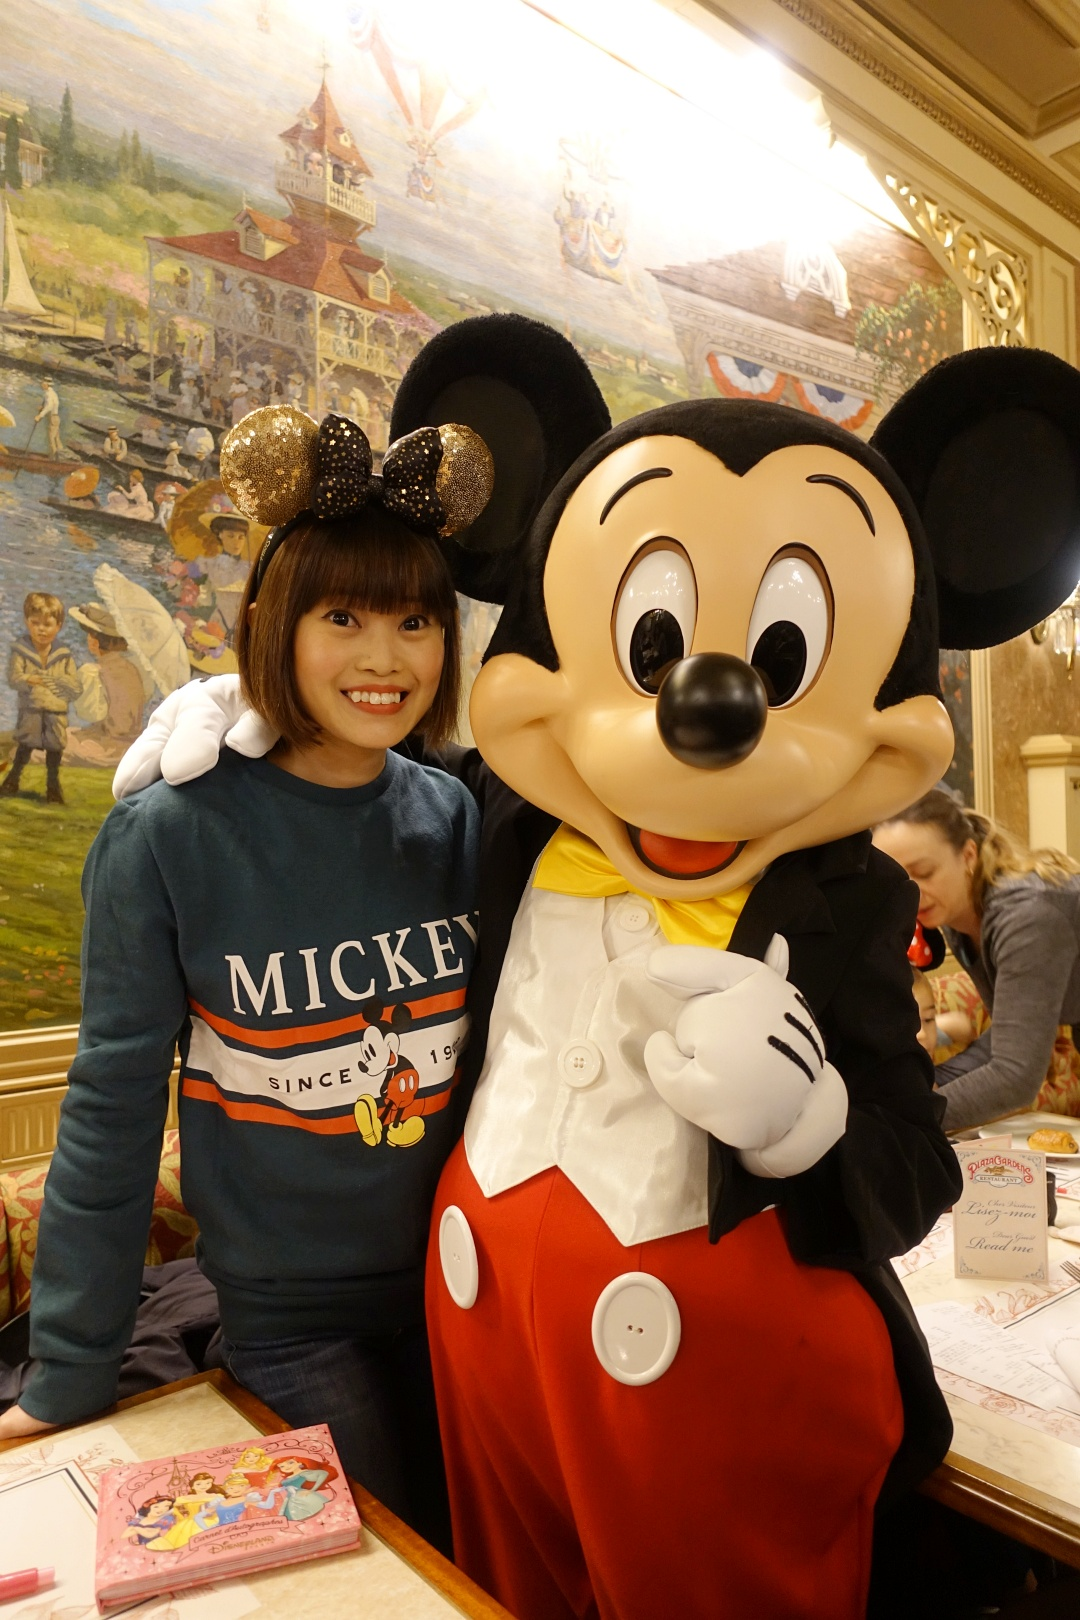 Breakfast with Disney Characters - Mickey Mouse | joanne-khoo.com